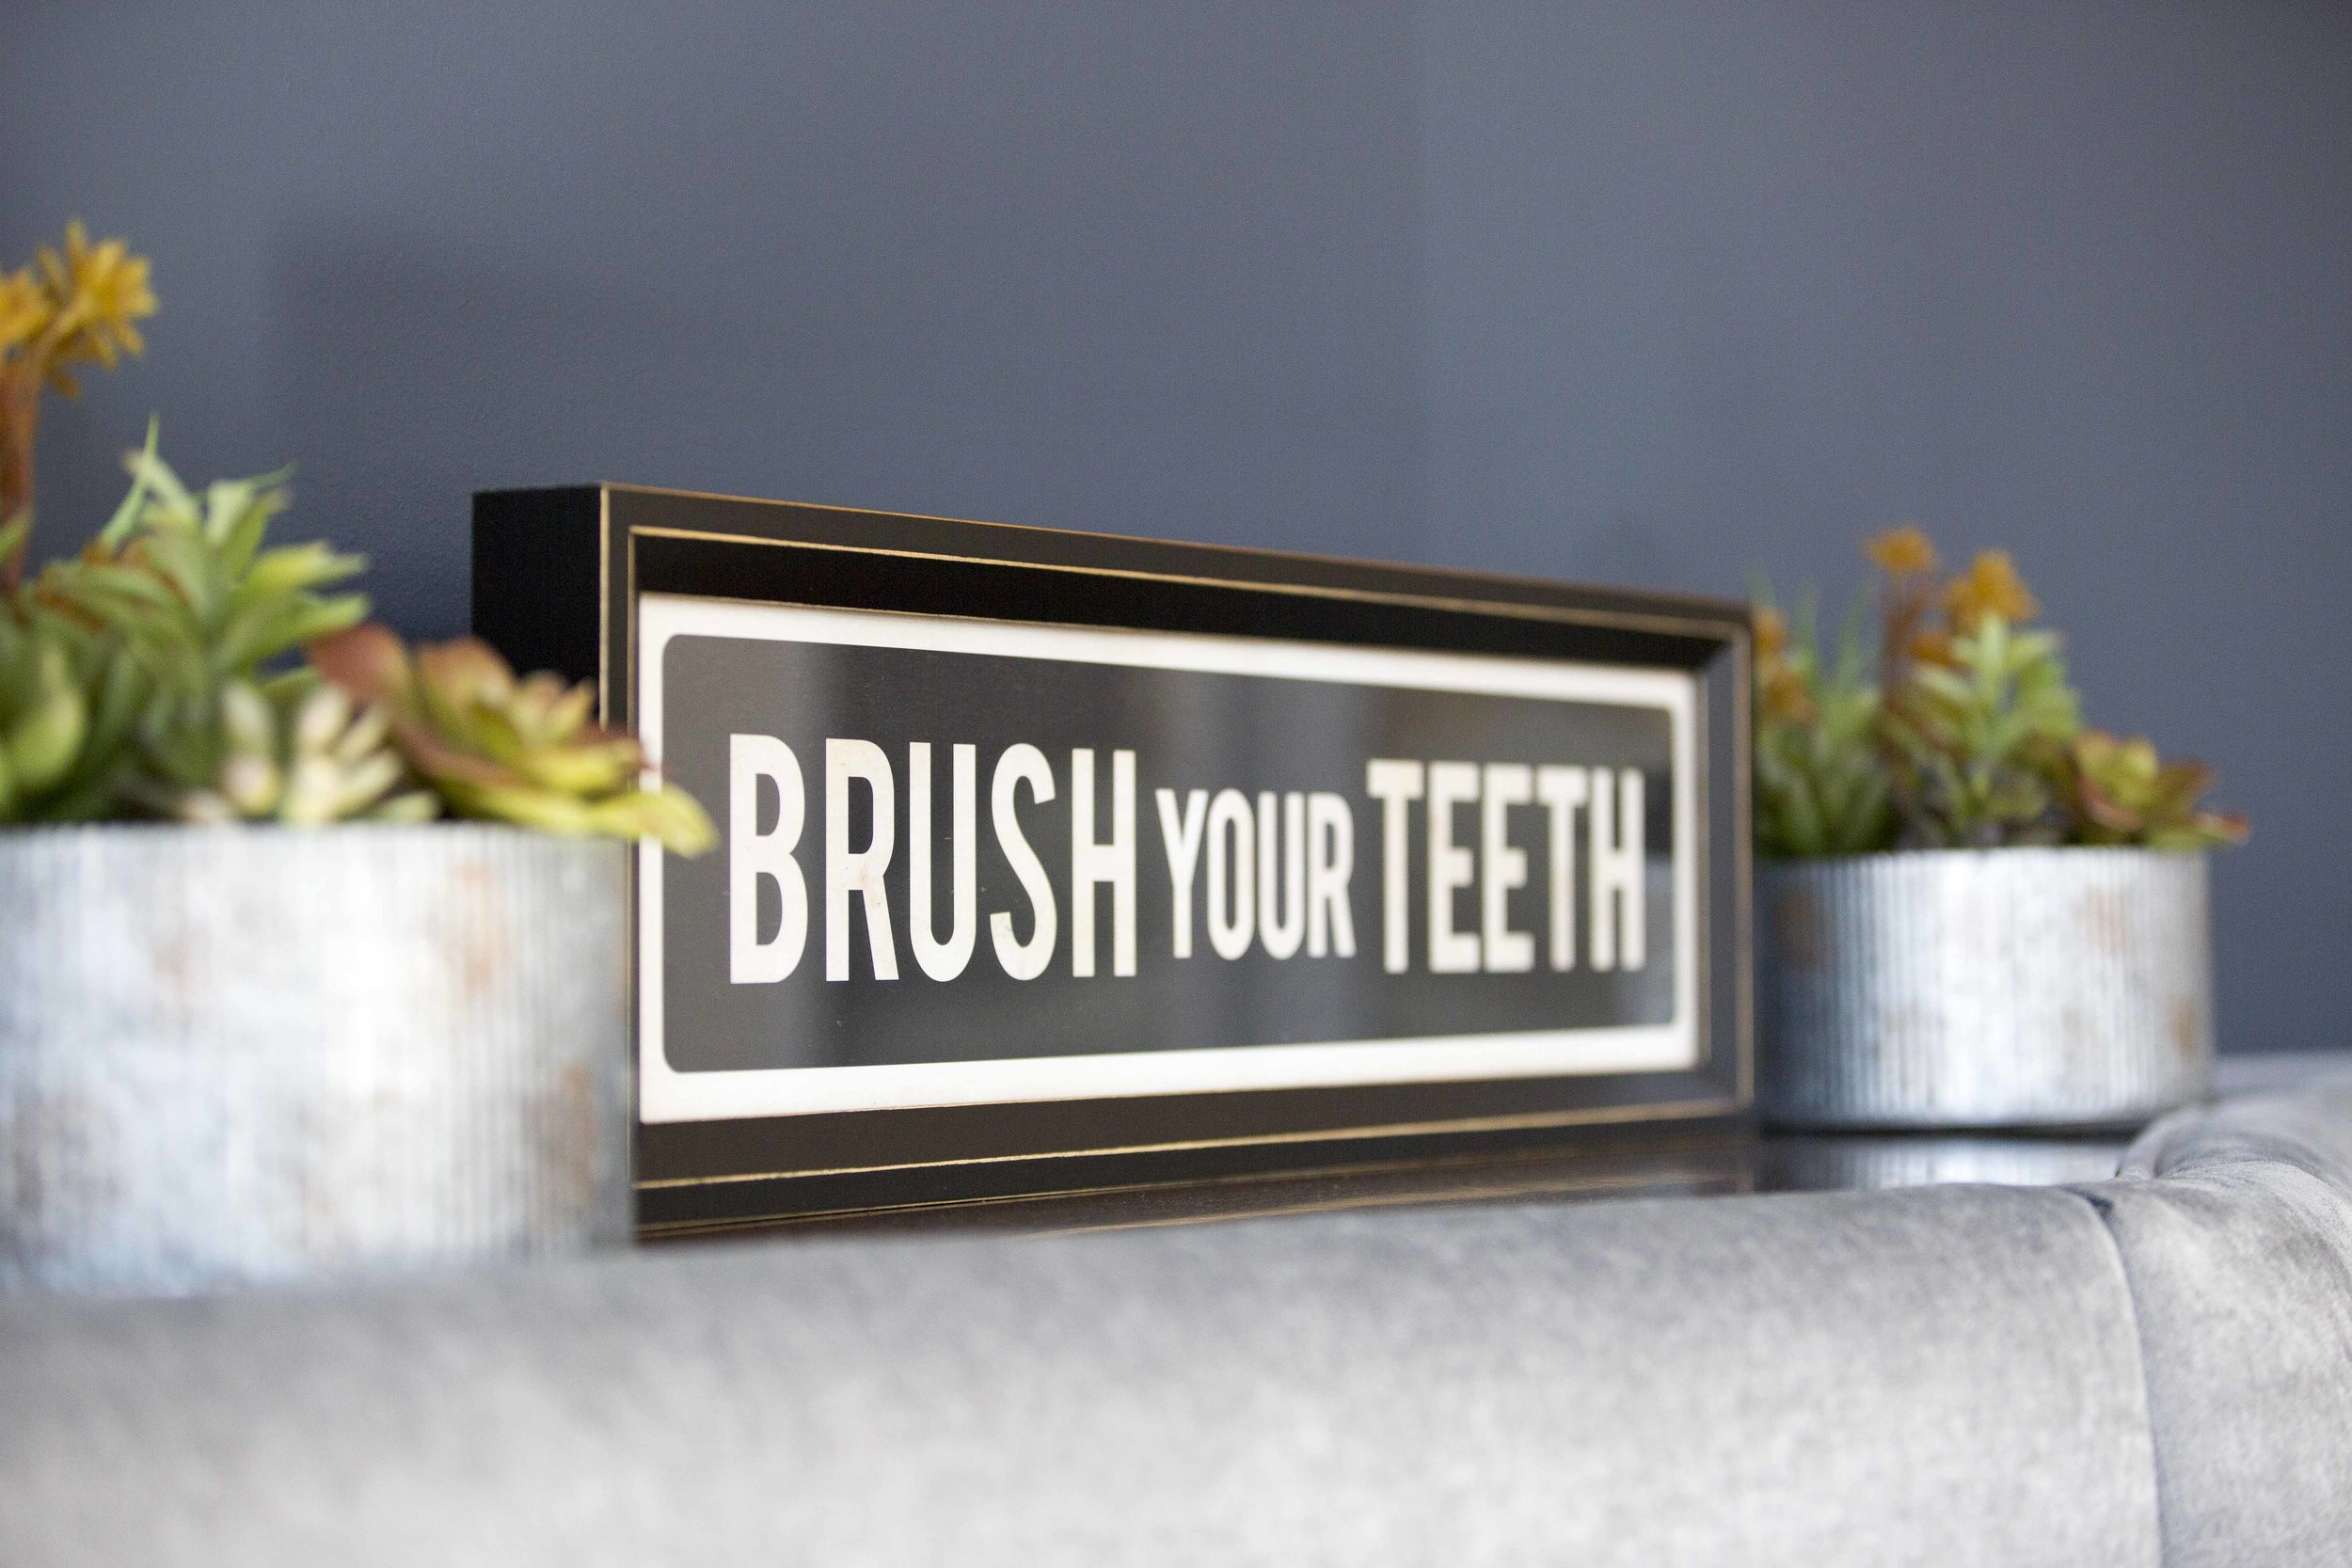 Brush your teeth image.jpg